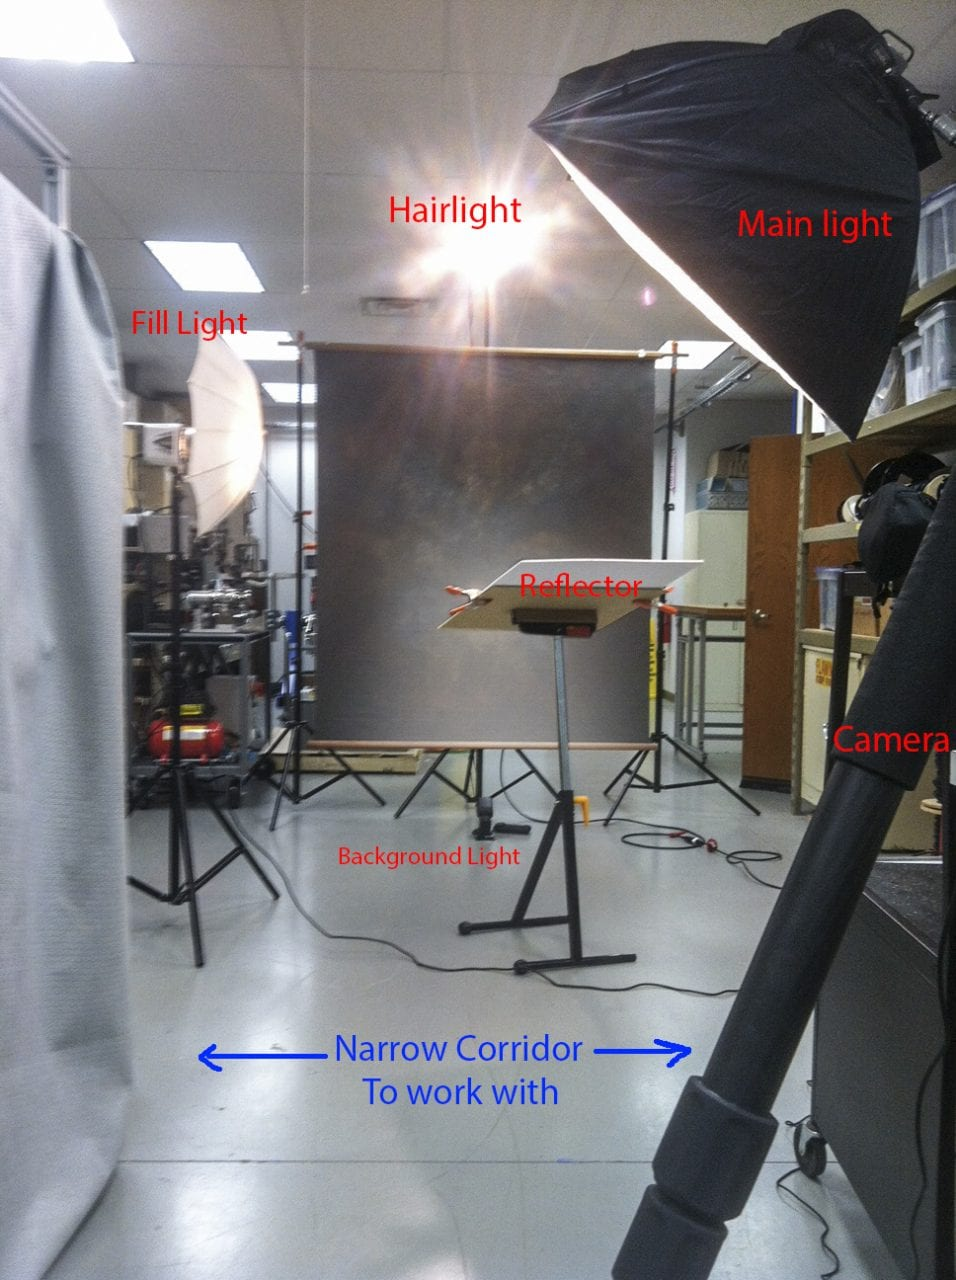 lighting setup in confined space for business portraits